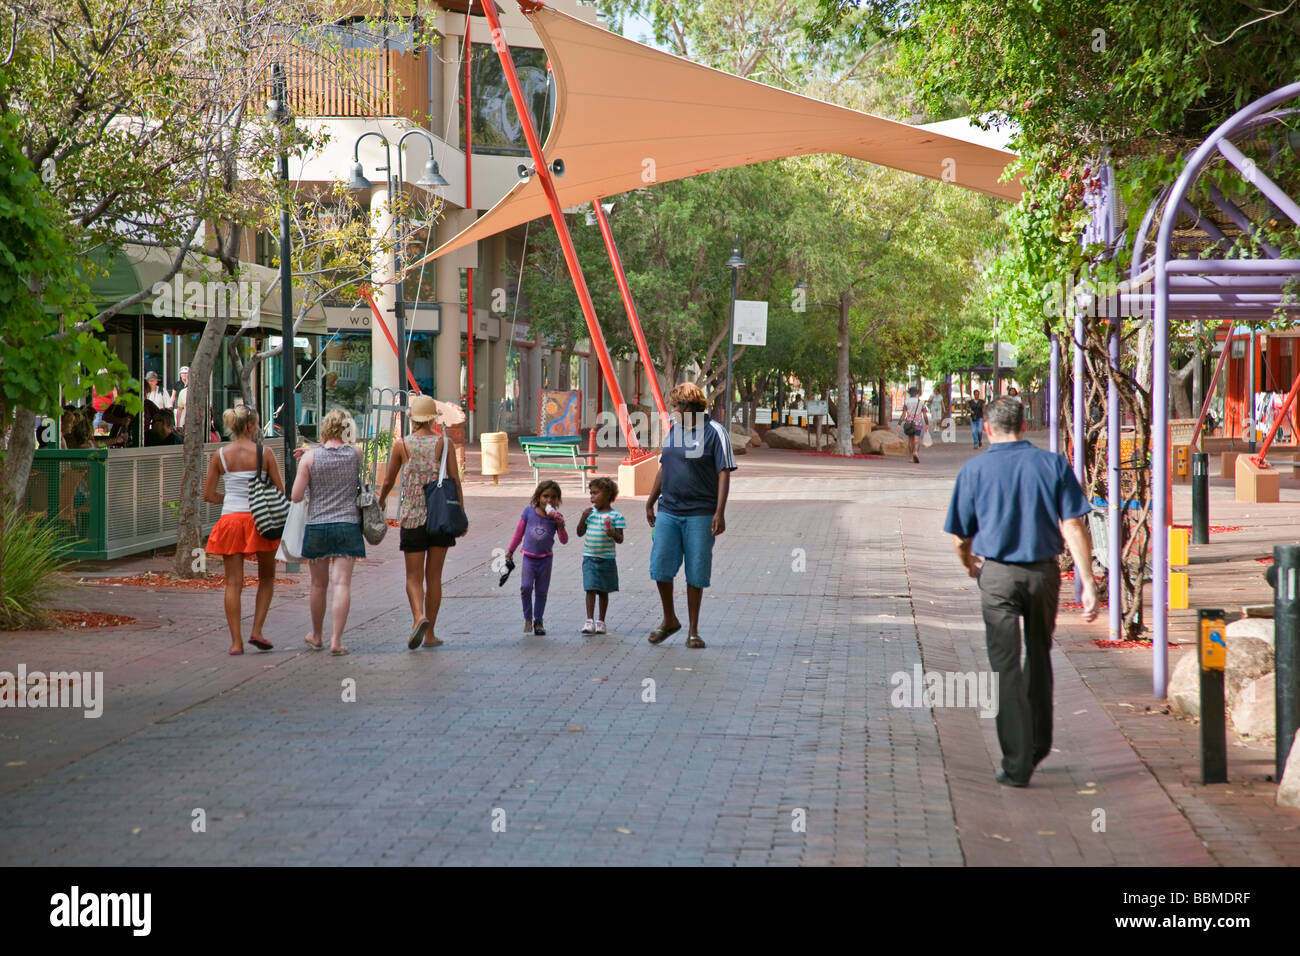 Australia, Northern Territory. A modern shopping mall at Alice Springs. - Stock Image